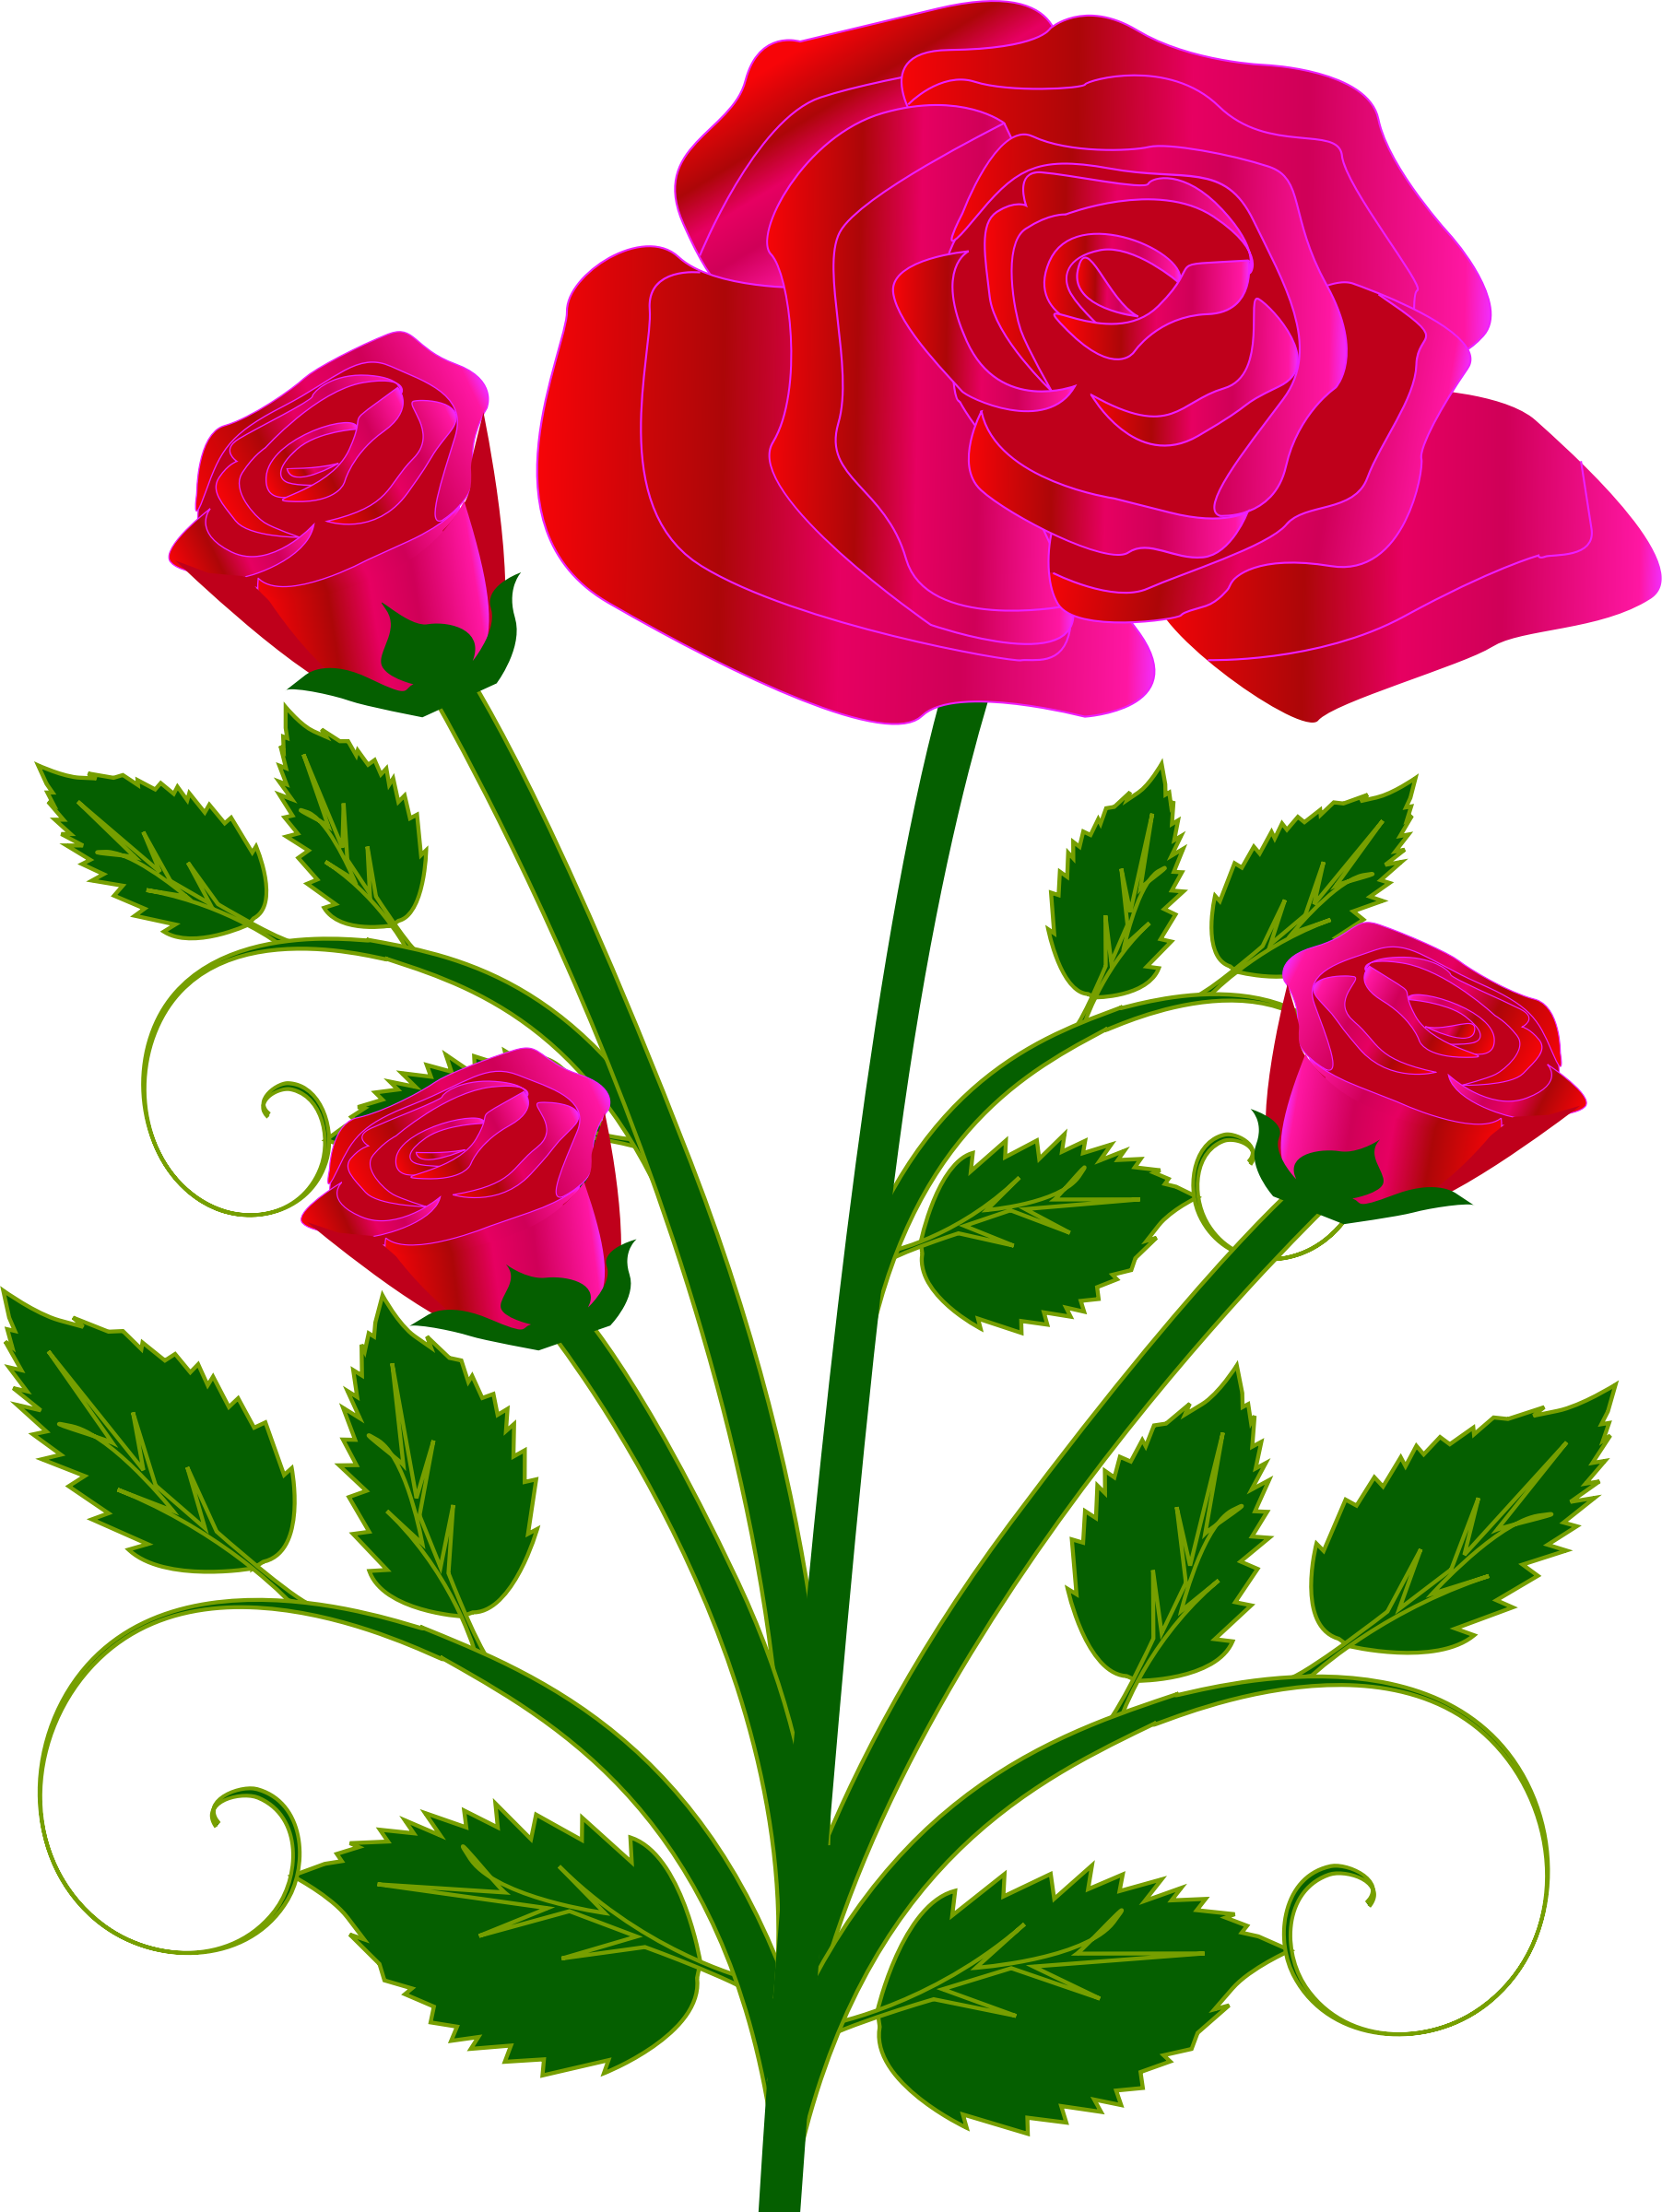 Clipart roses headband. Rose by presquesage flower